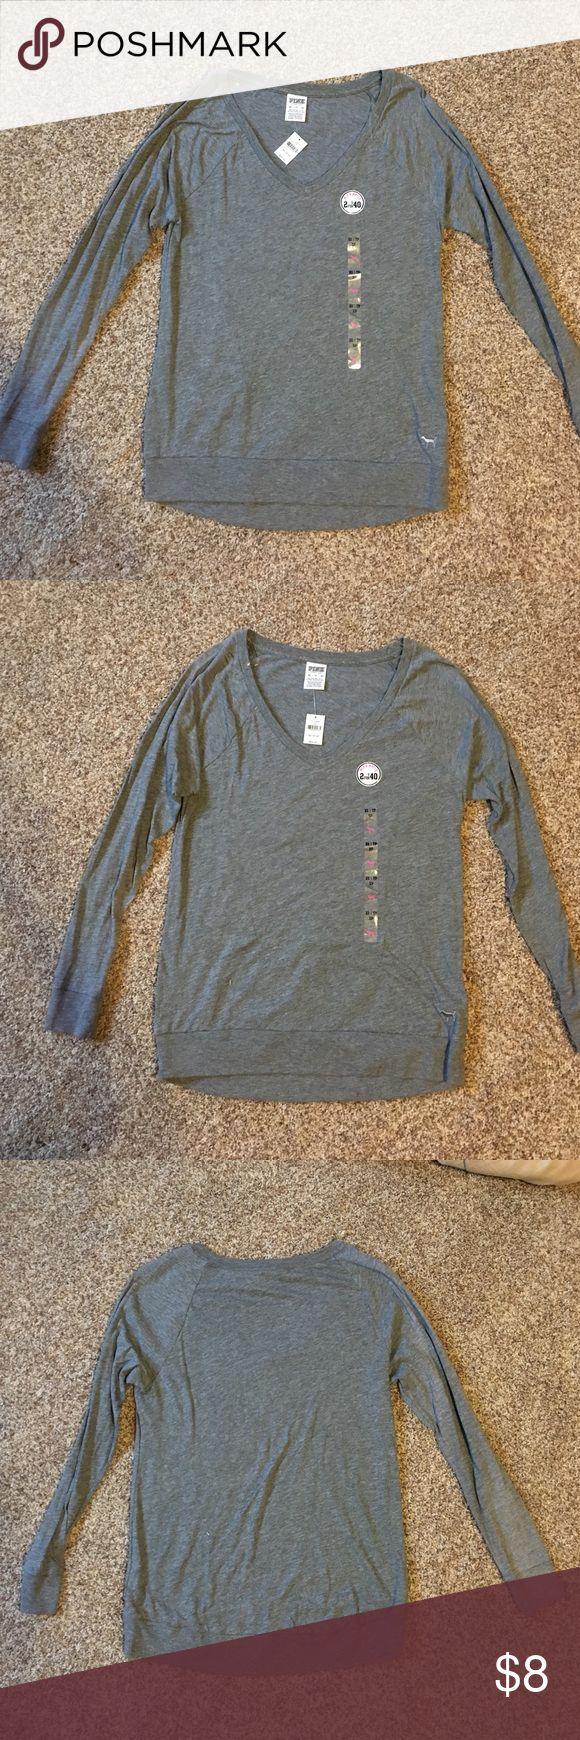 Gray PINK Victoria's Secret Long Sleeve V-Neck T BRAND NEW!! This is a super comfortable long sleeve, v-neck  t-shirt from Victoria's Secret PINK line. The gray shirt is size XS but runs big. Meant to be loose and goes perfect with leggings! Very popular piece of active wear clothing! PINK Victoria's Secret Tops Tees - Long Sleeve